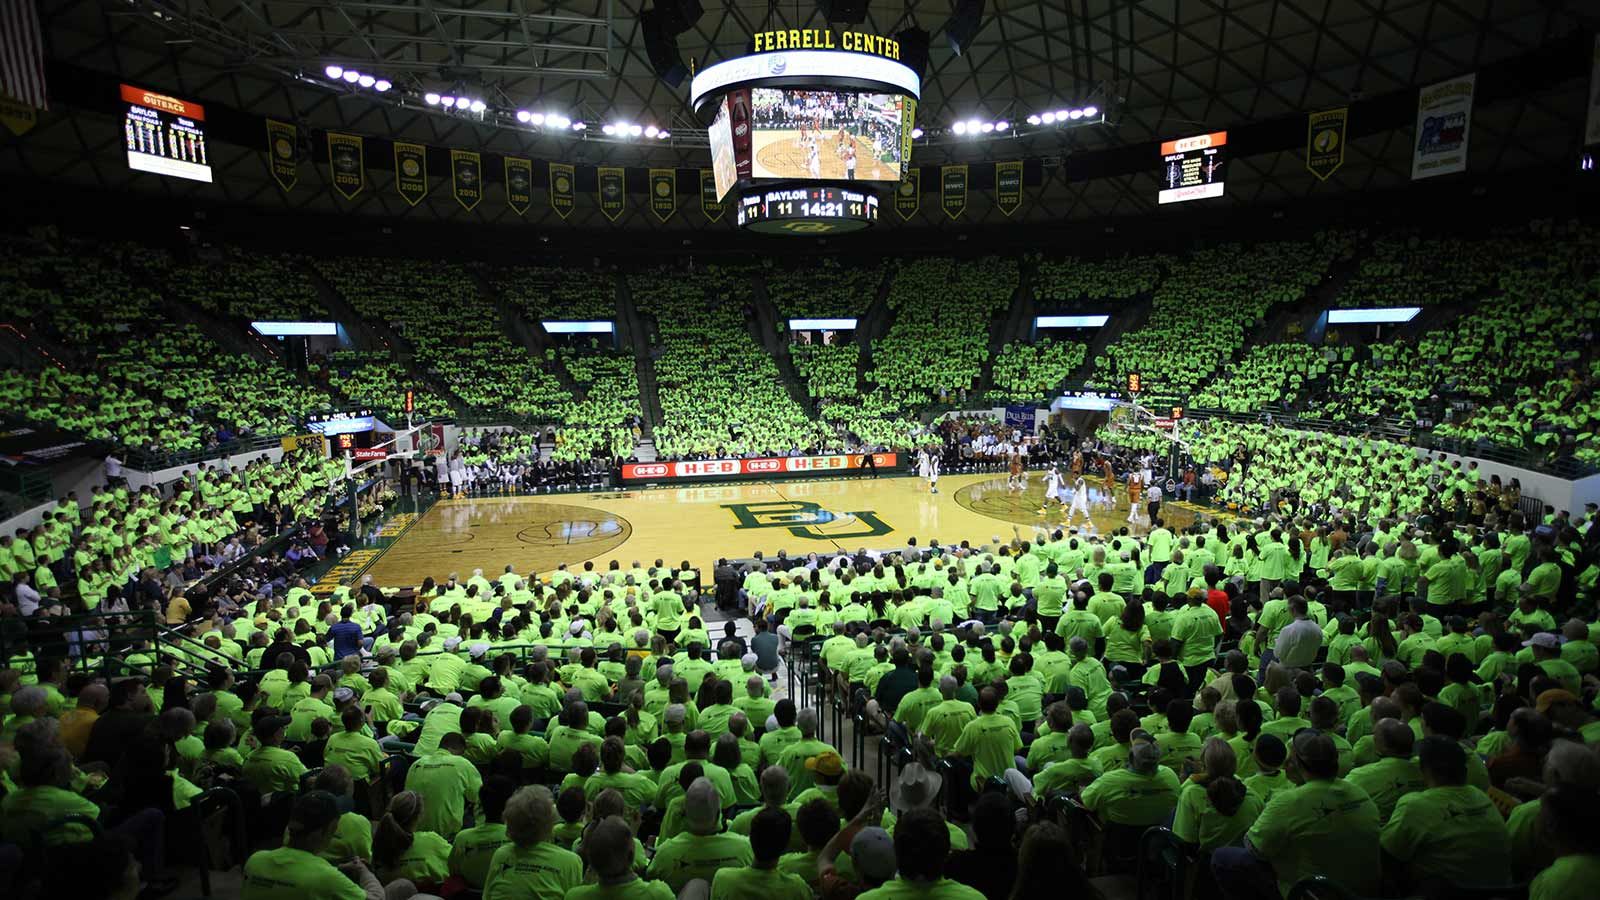 Baylor faithful cheer the Bears and Lady Bears to victory in regular and postseason play in the Ferrell Center.